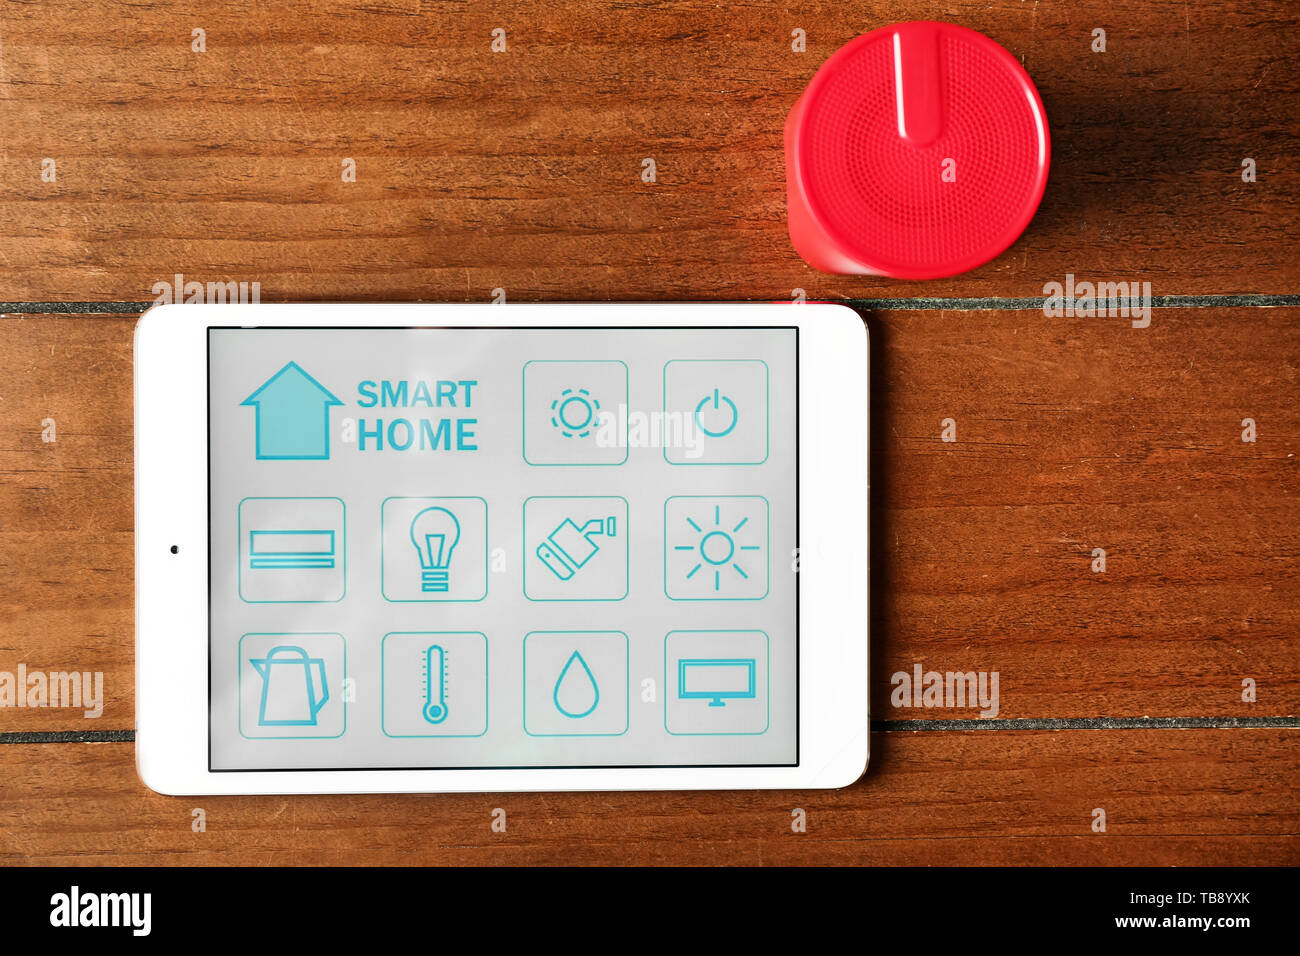 Internet Things Flat Icons Stock Photos & Internet Things Flat Icons